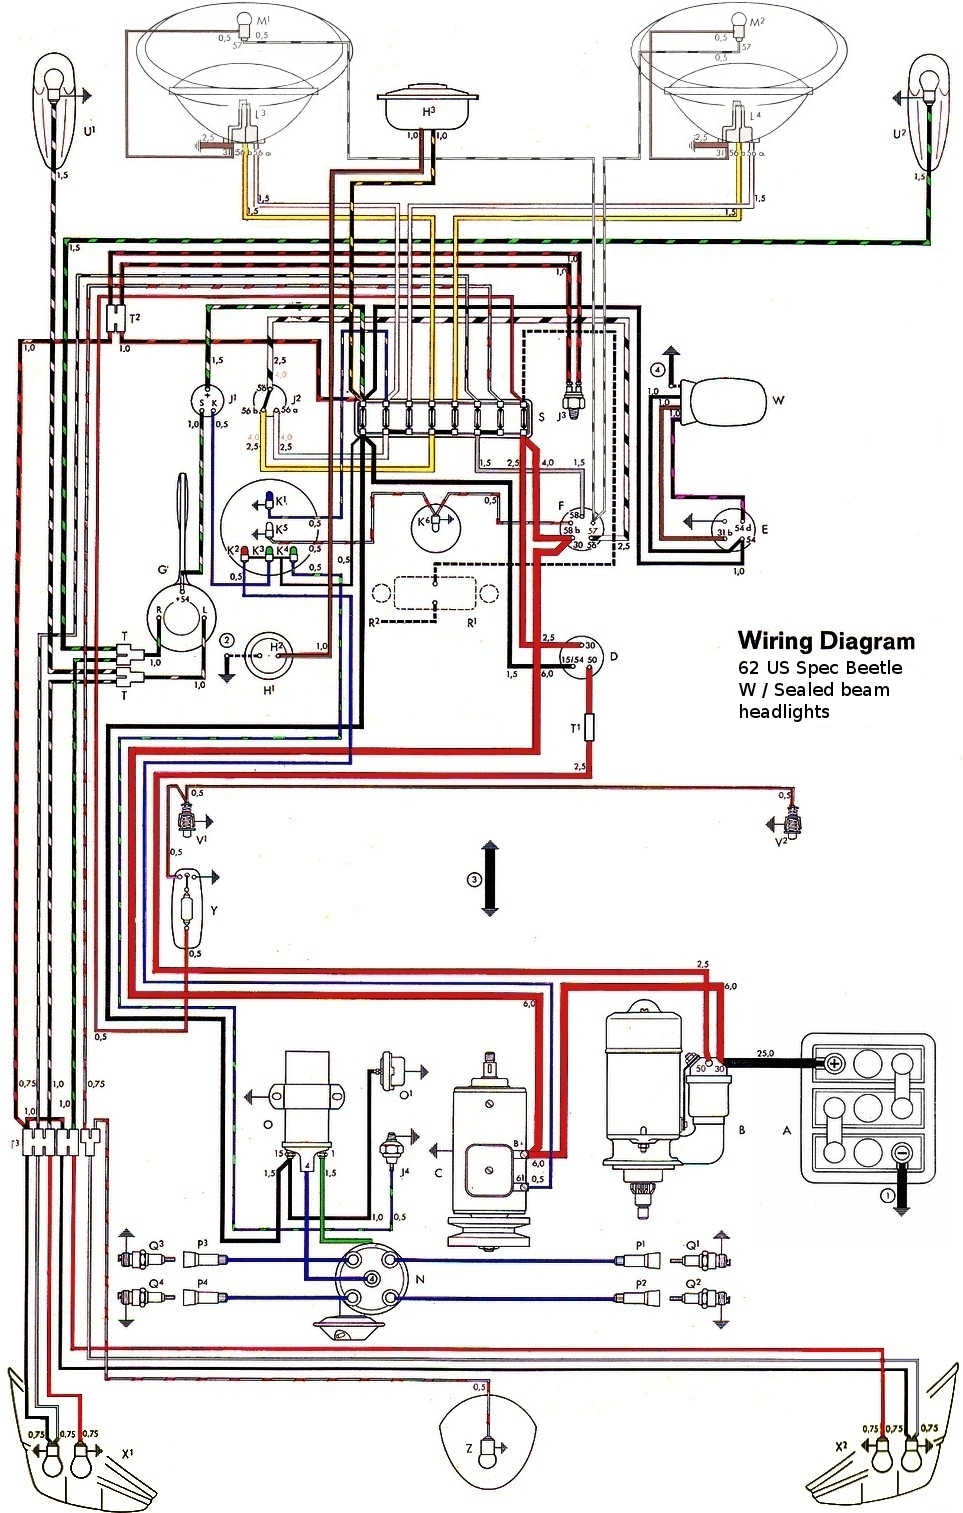 73 Vw Bug Ignition Wiring Diagram